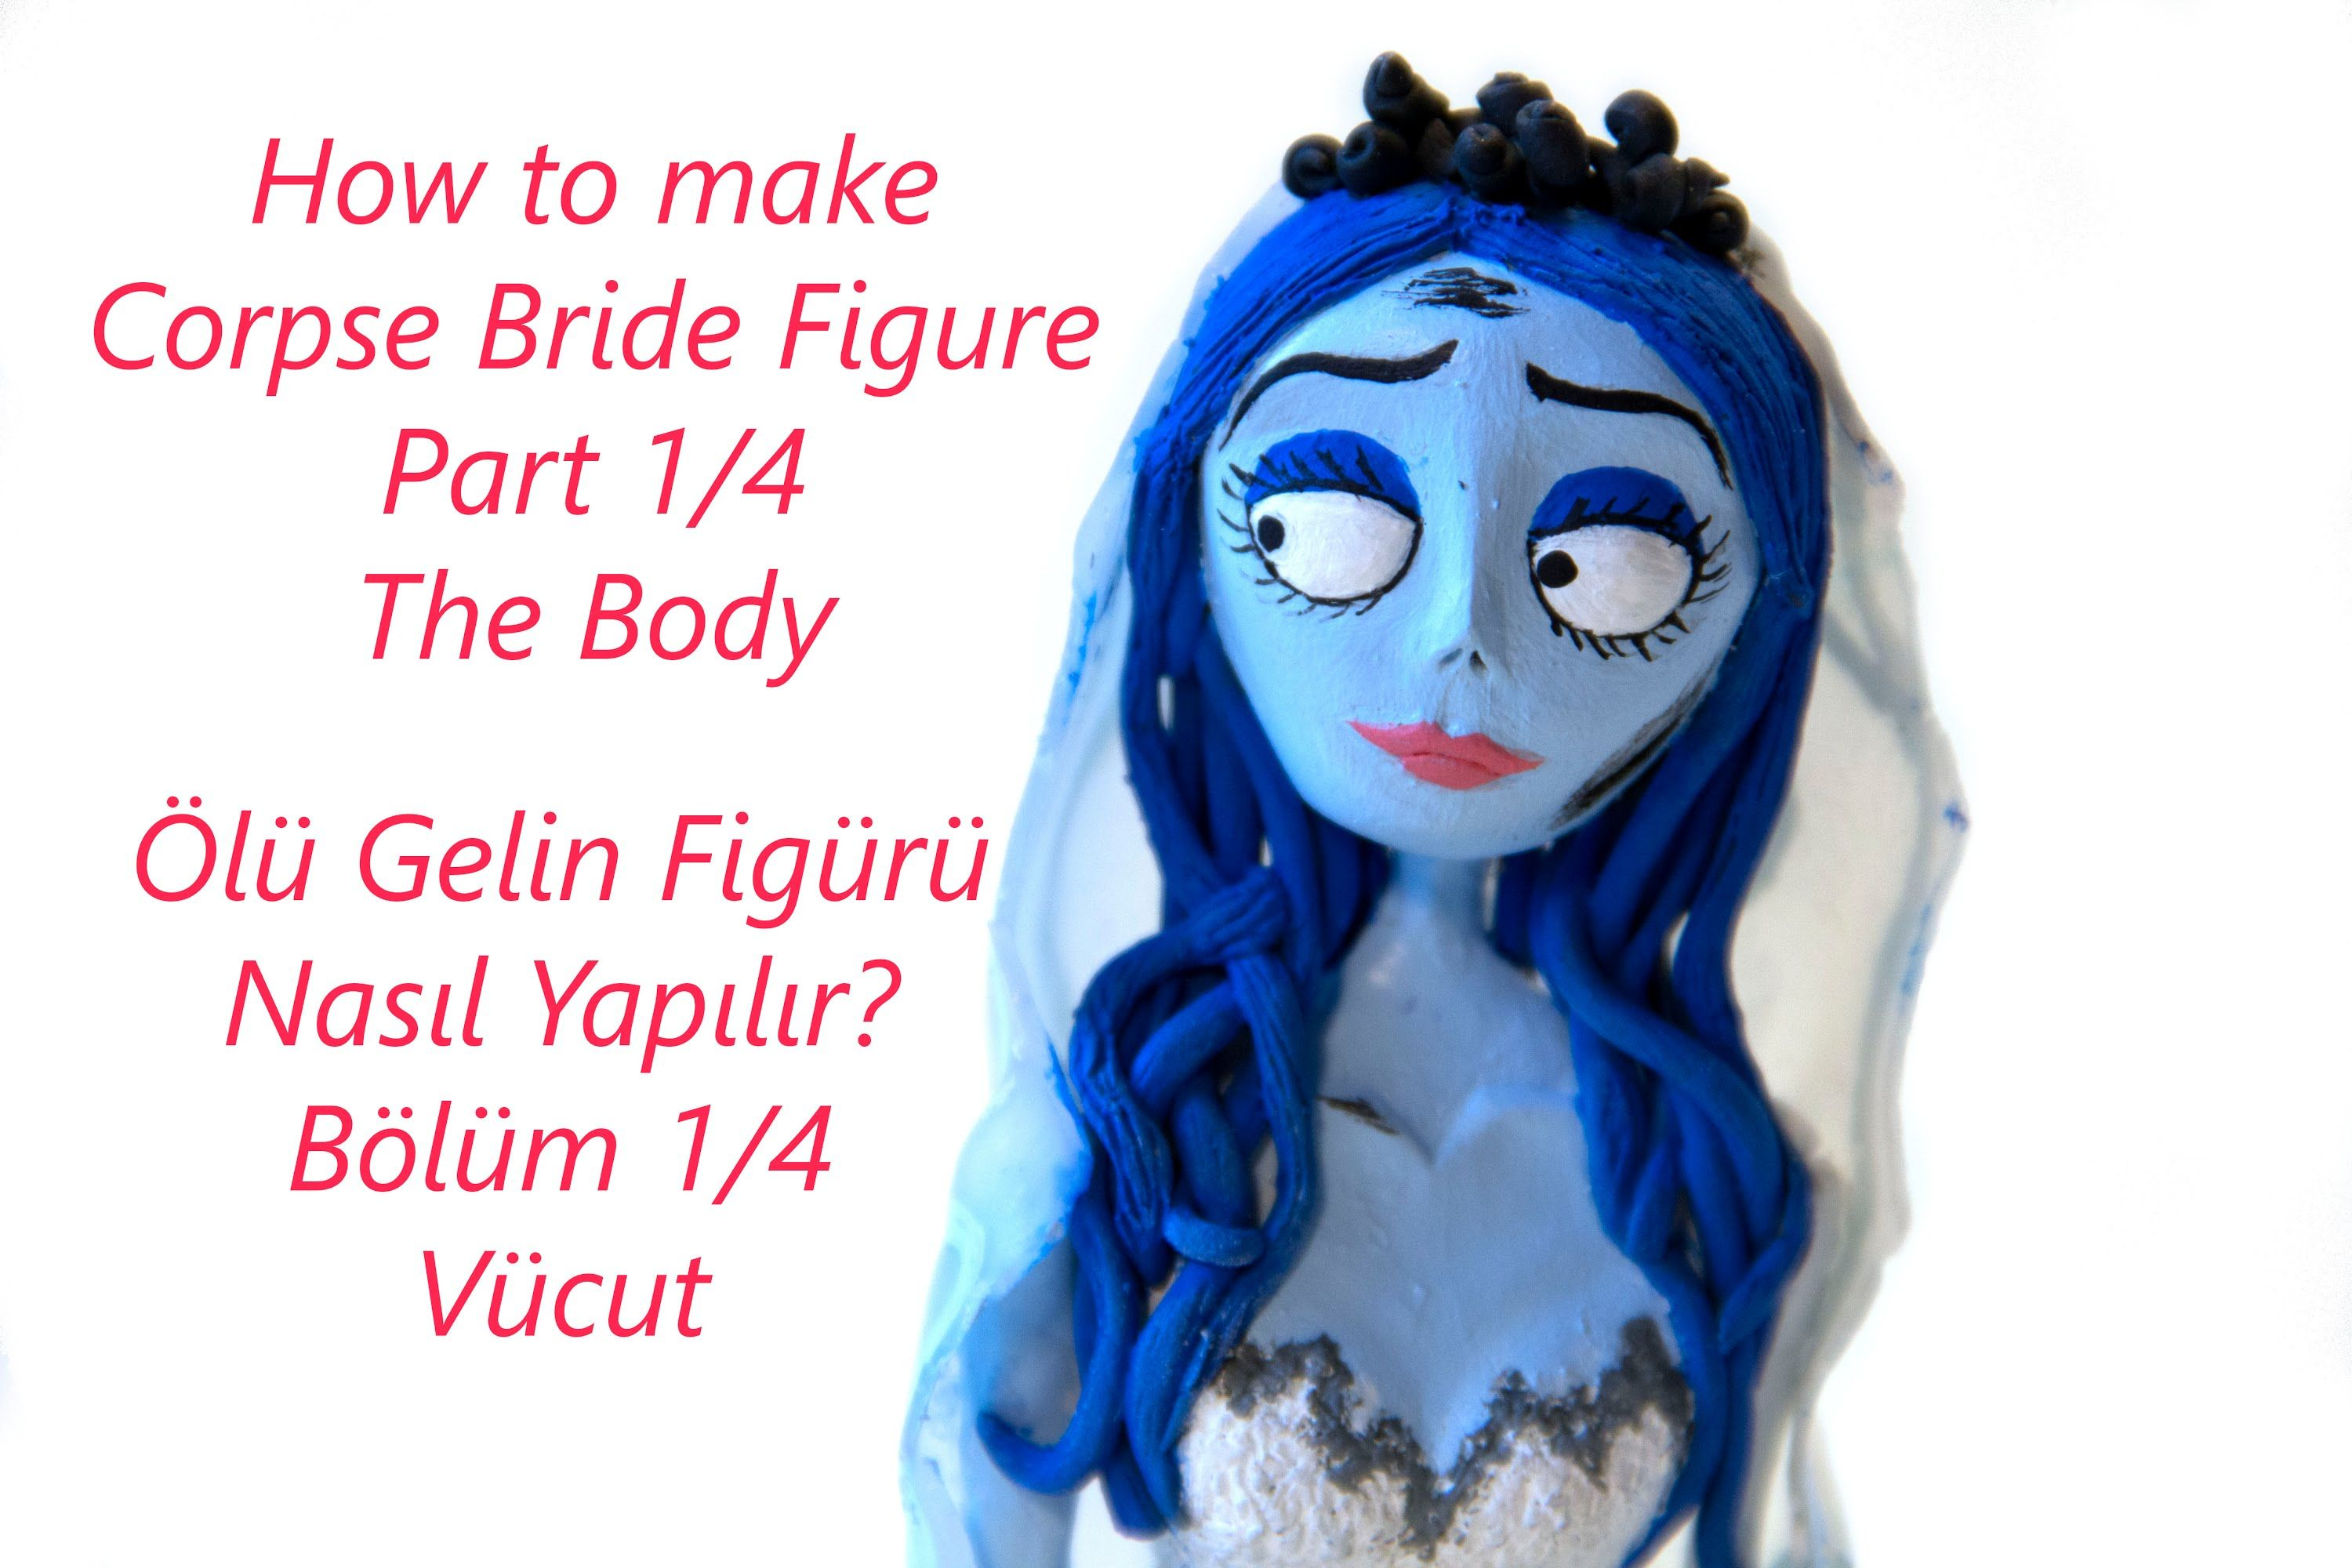 Corpse Bride Polymer Clay Figure Tutorial Part 1/4 The